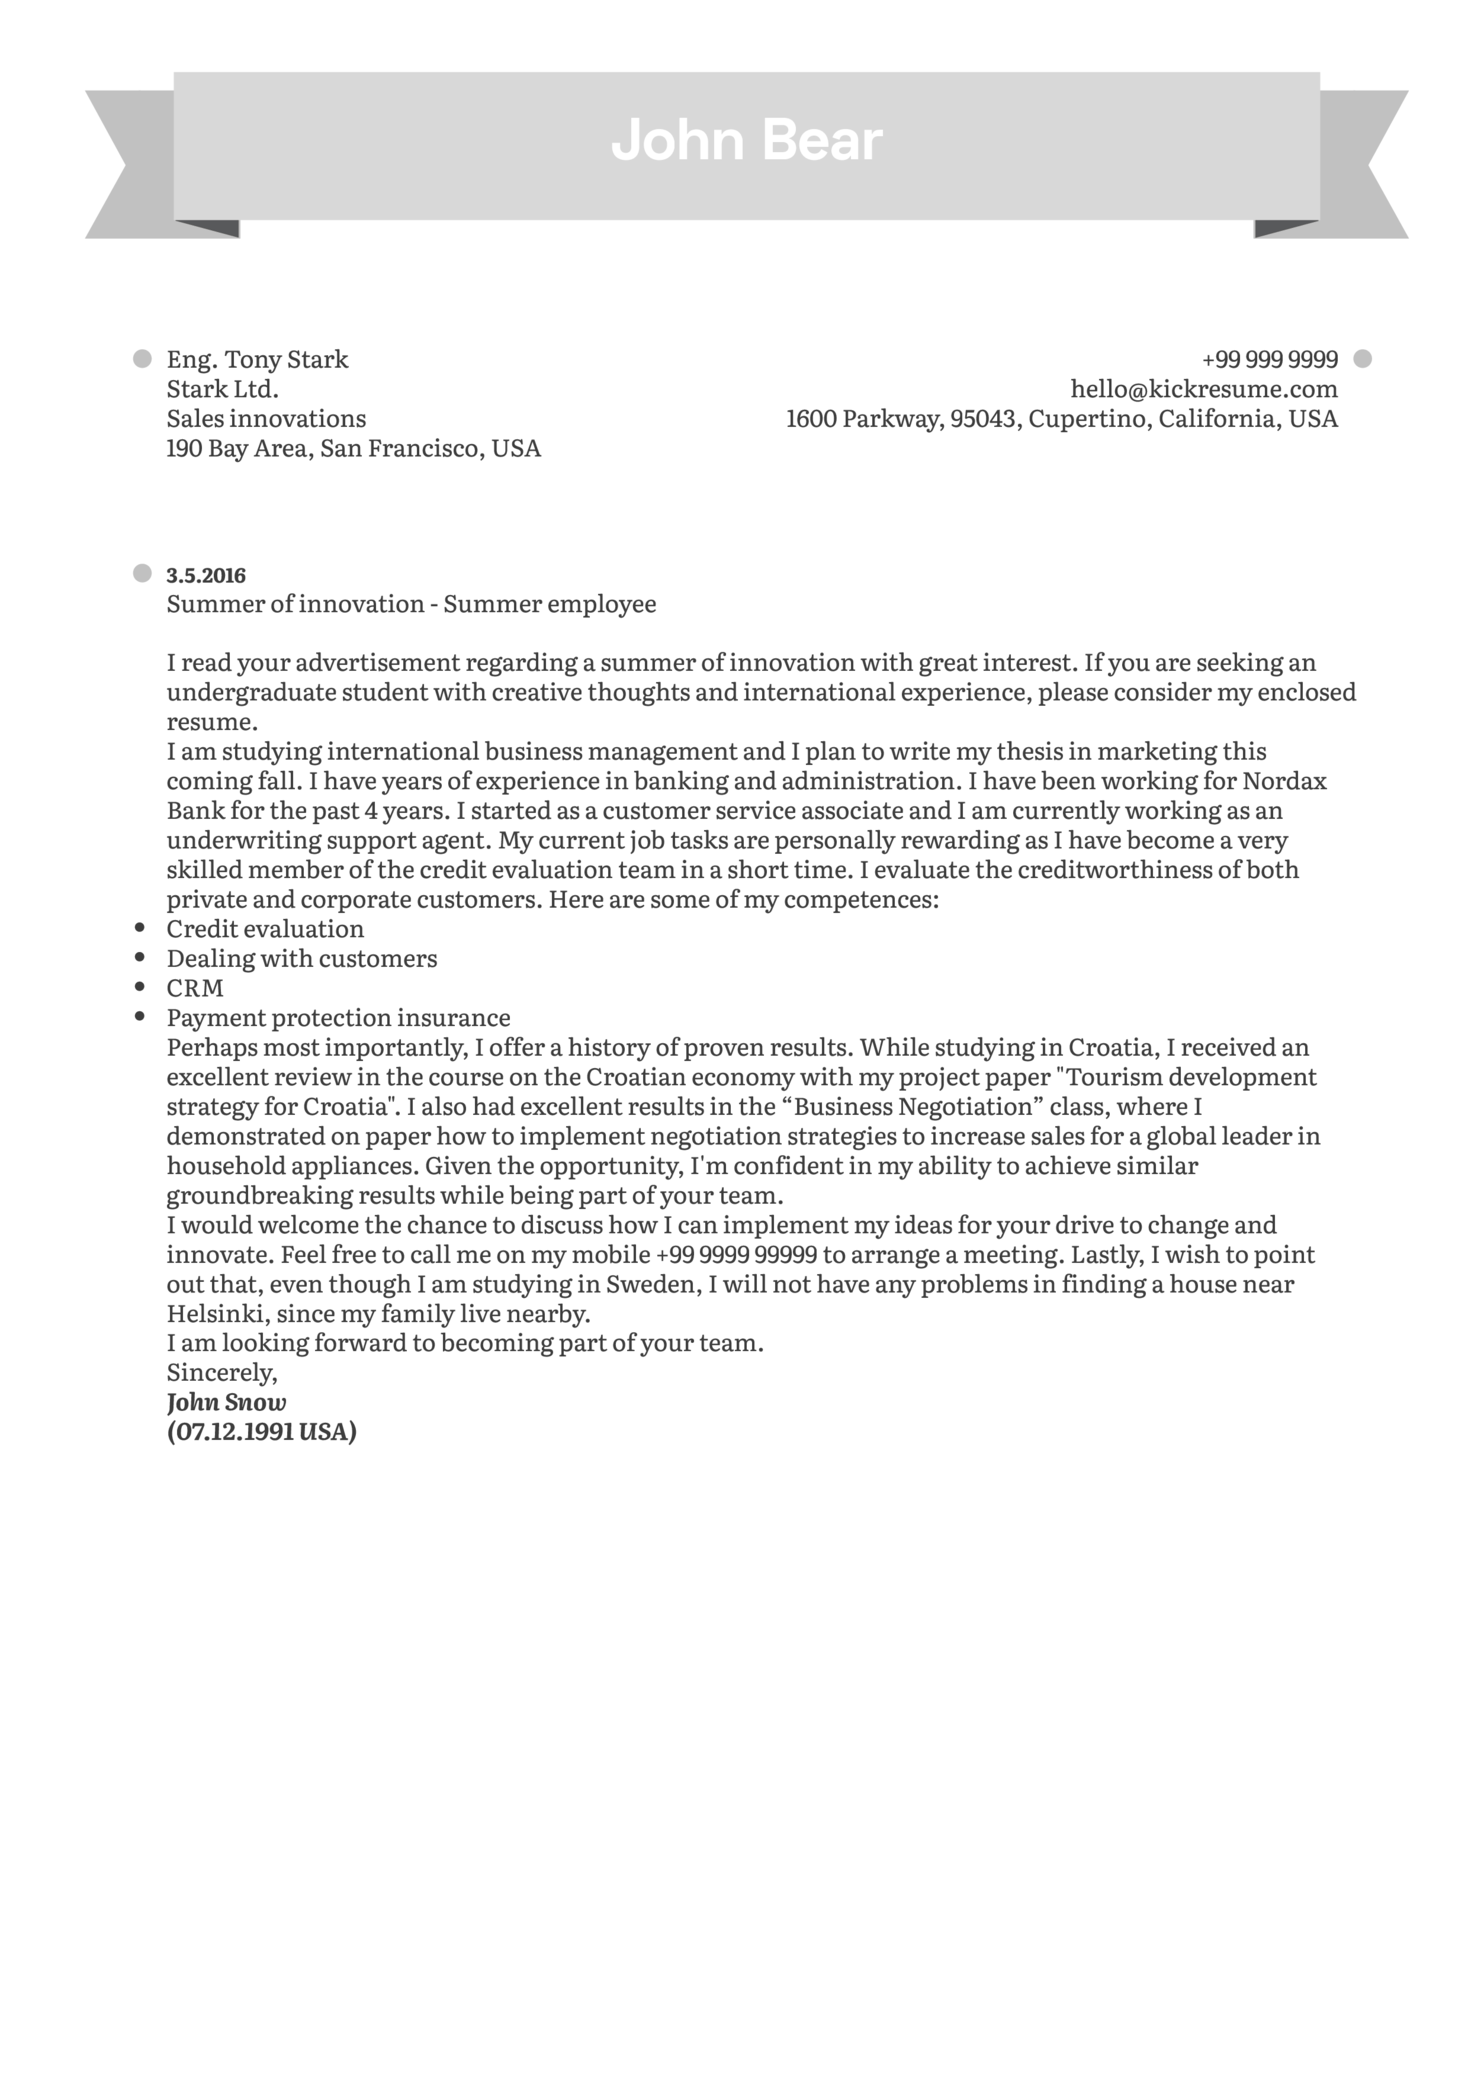 Student Summer Job Cover Letter Sample  Cover Letter For Job Opening